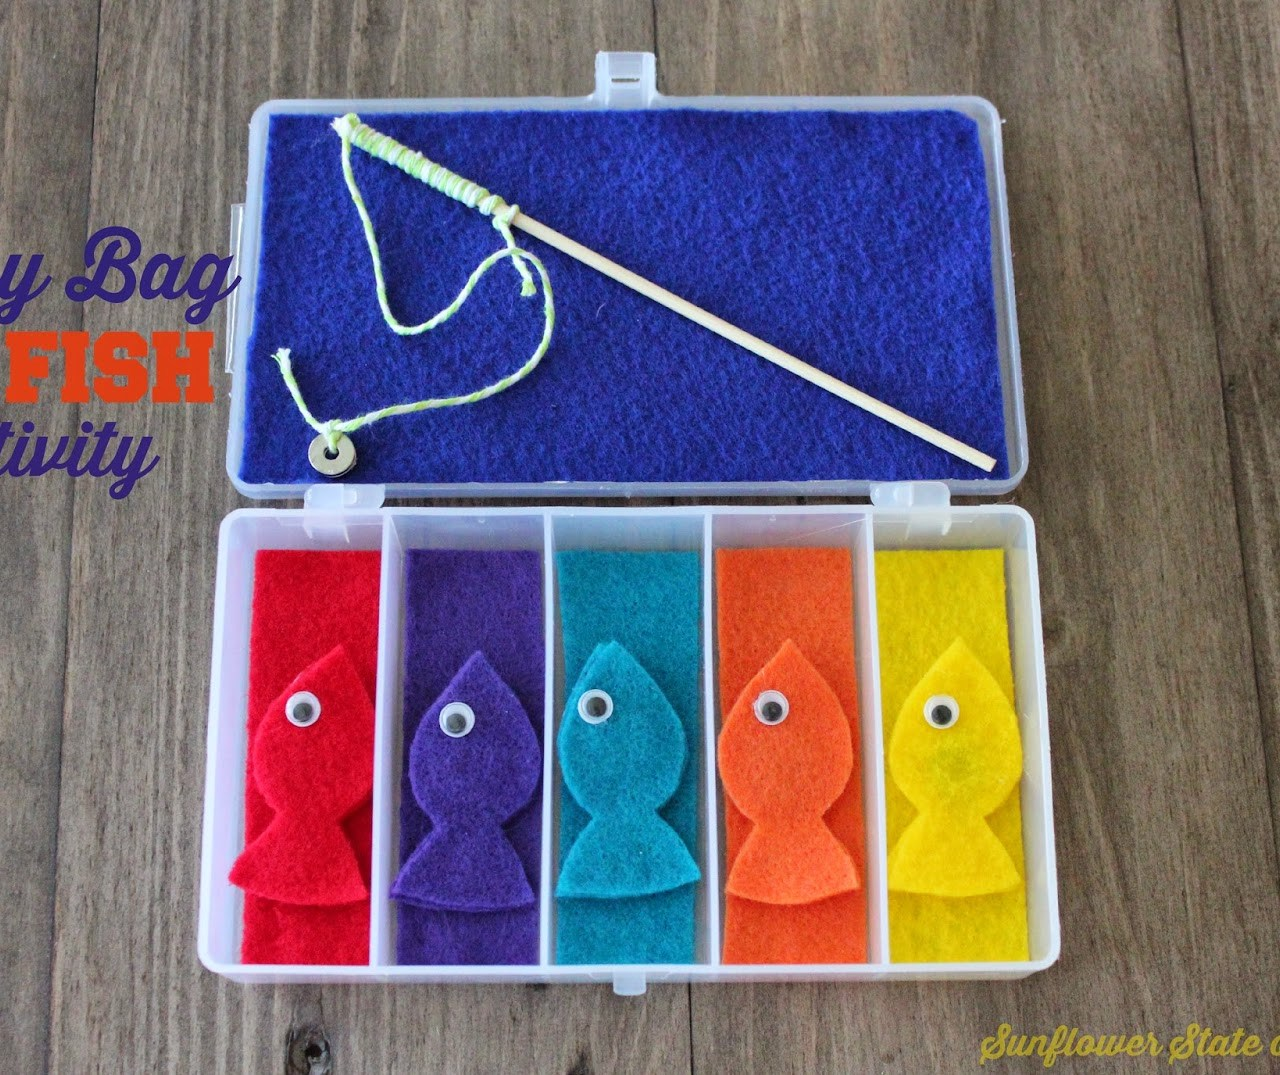 Gone Fishin' – A Busy Bag DIY